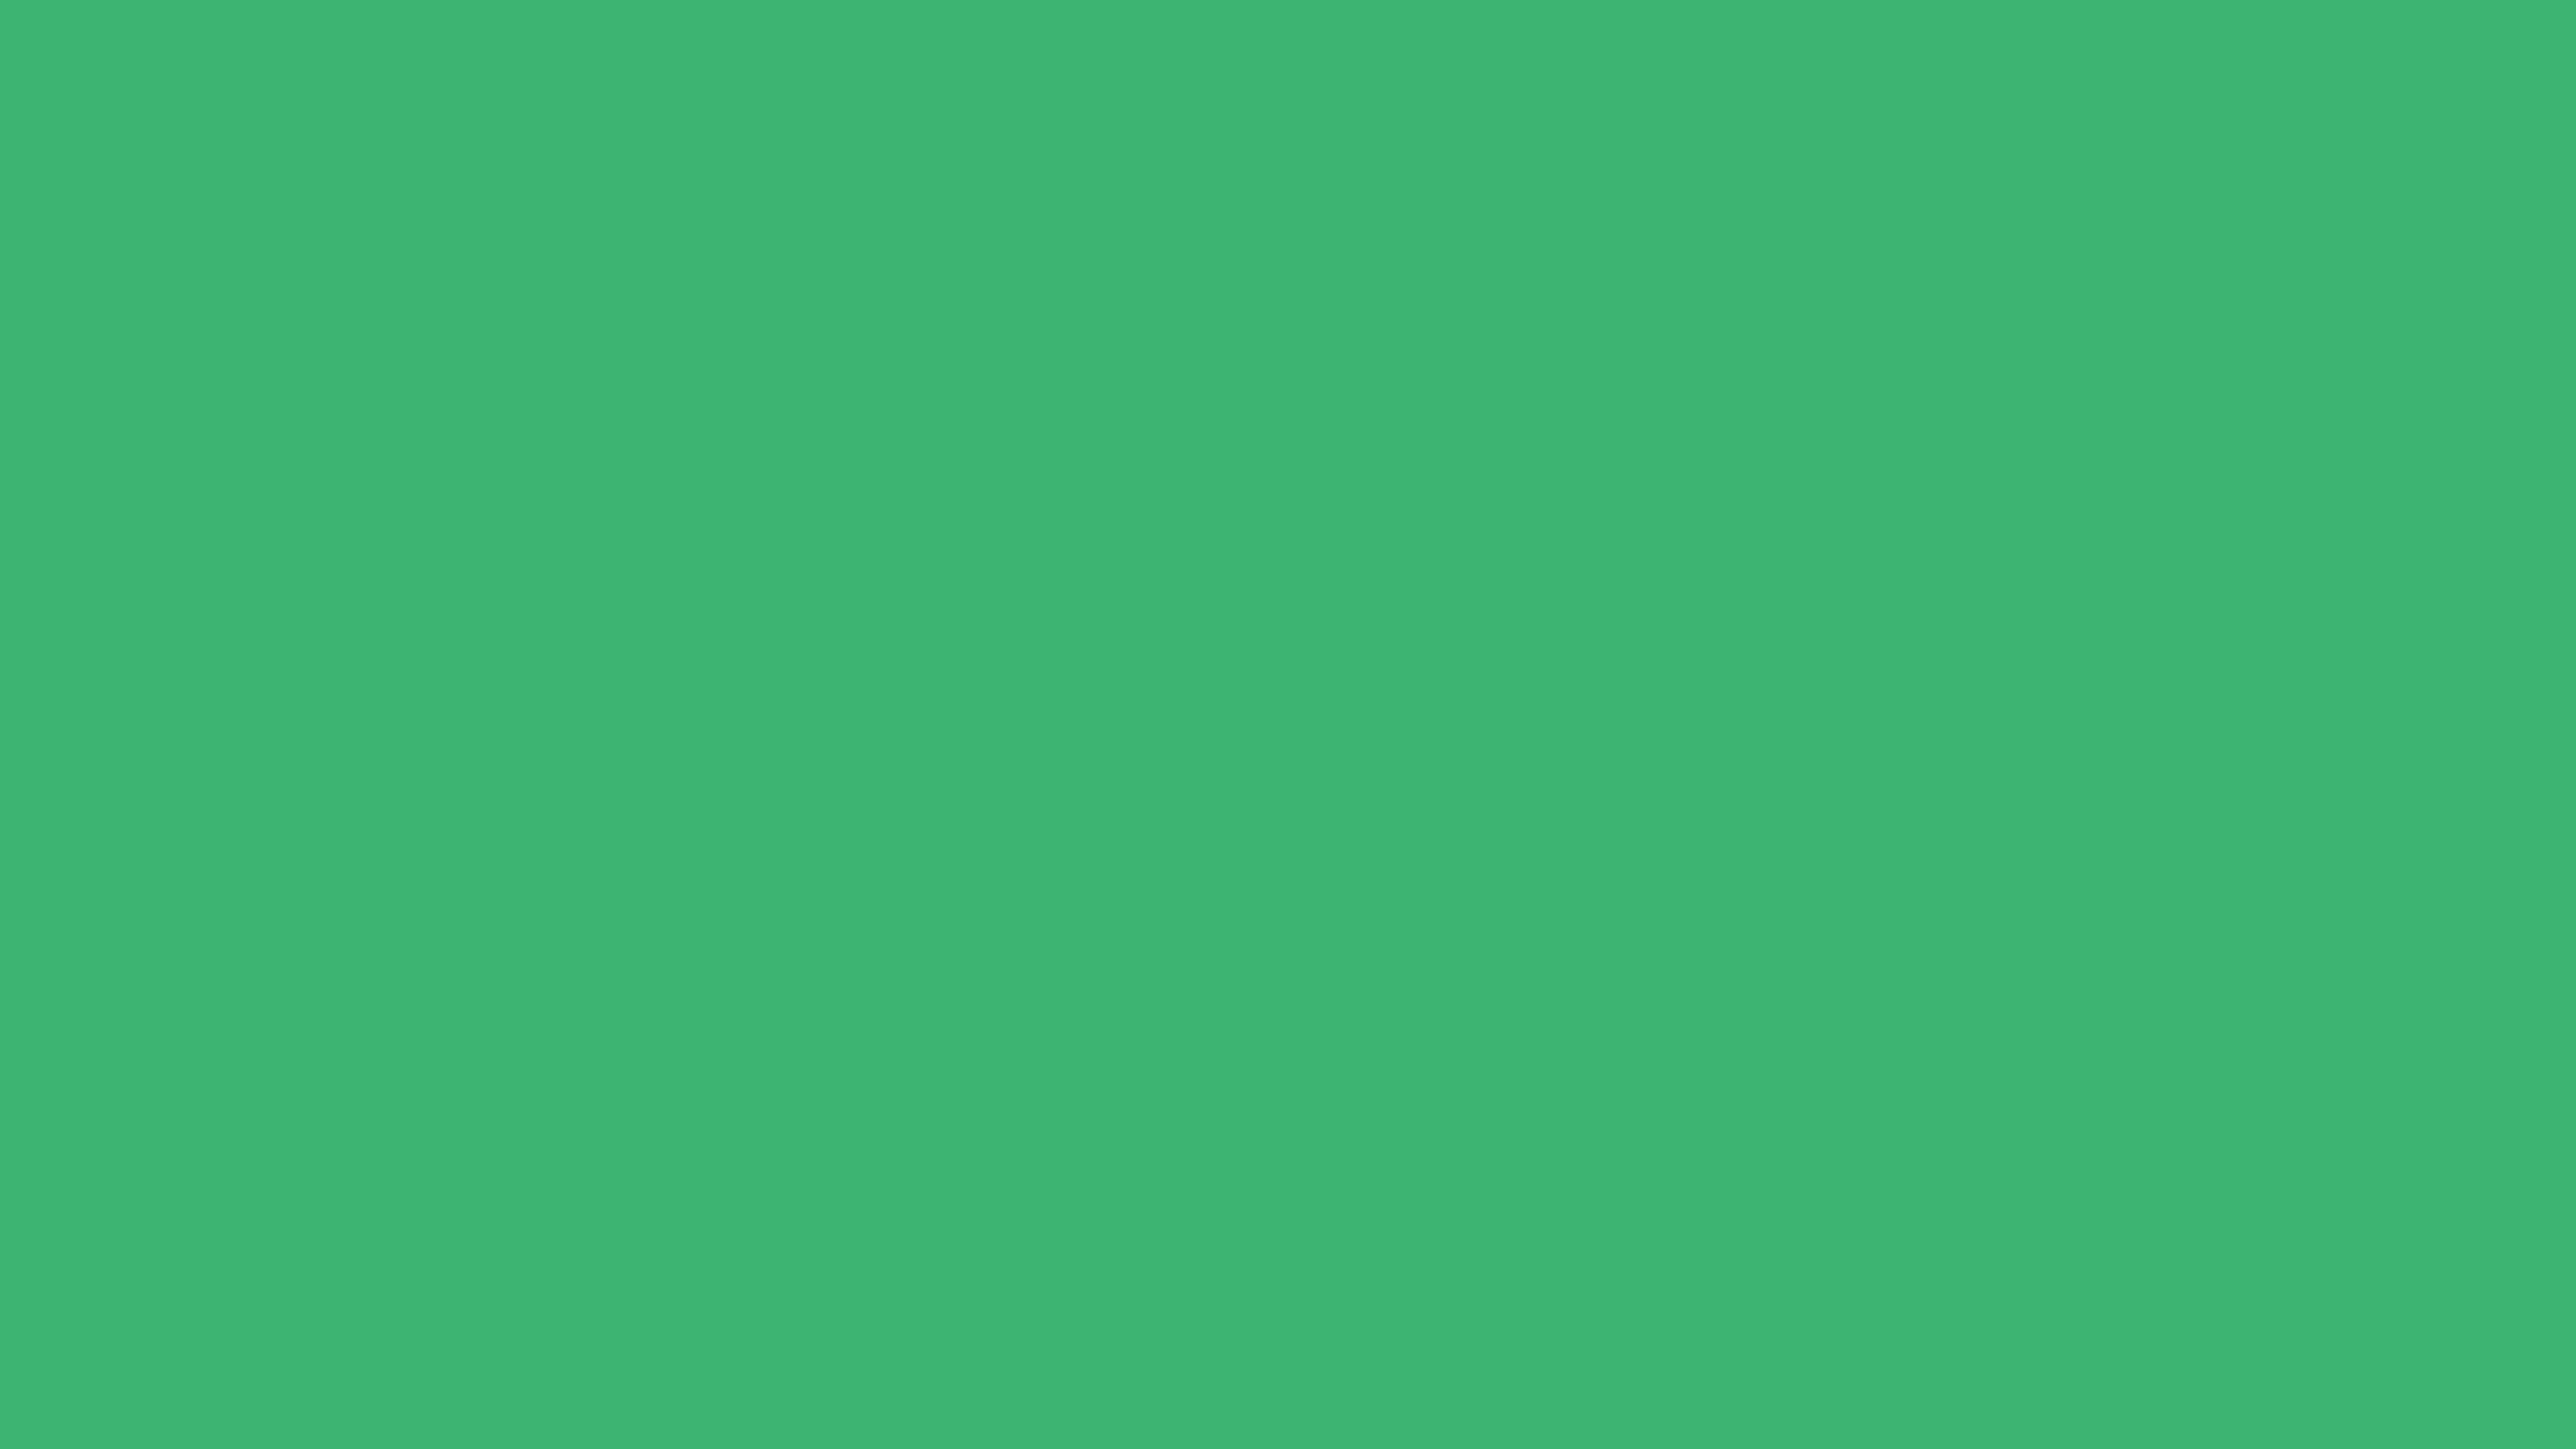 3840x2160 Medium Sea Green Solid Color Background